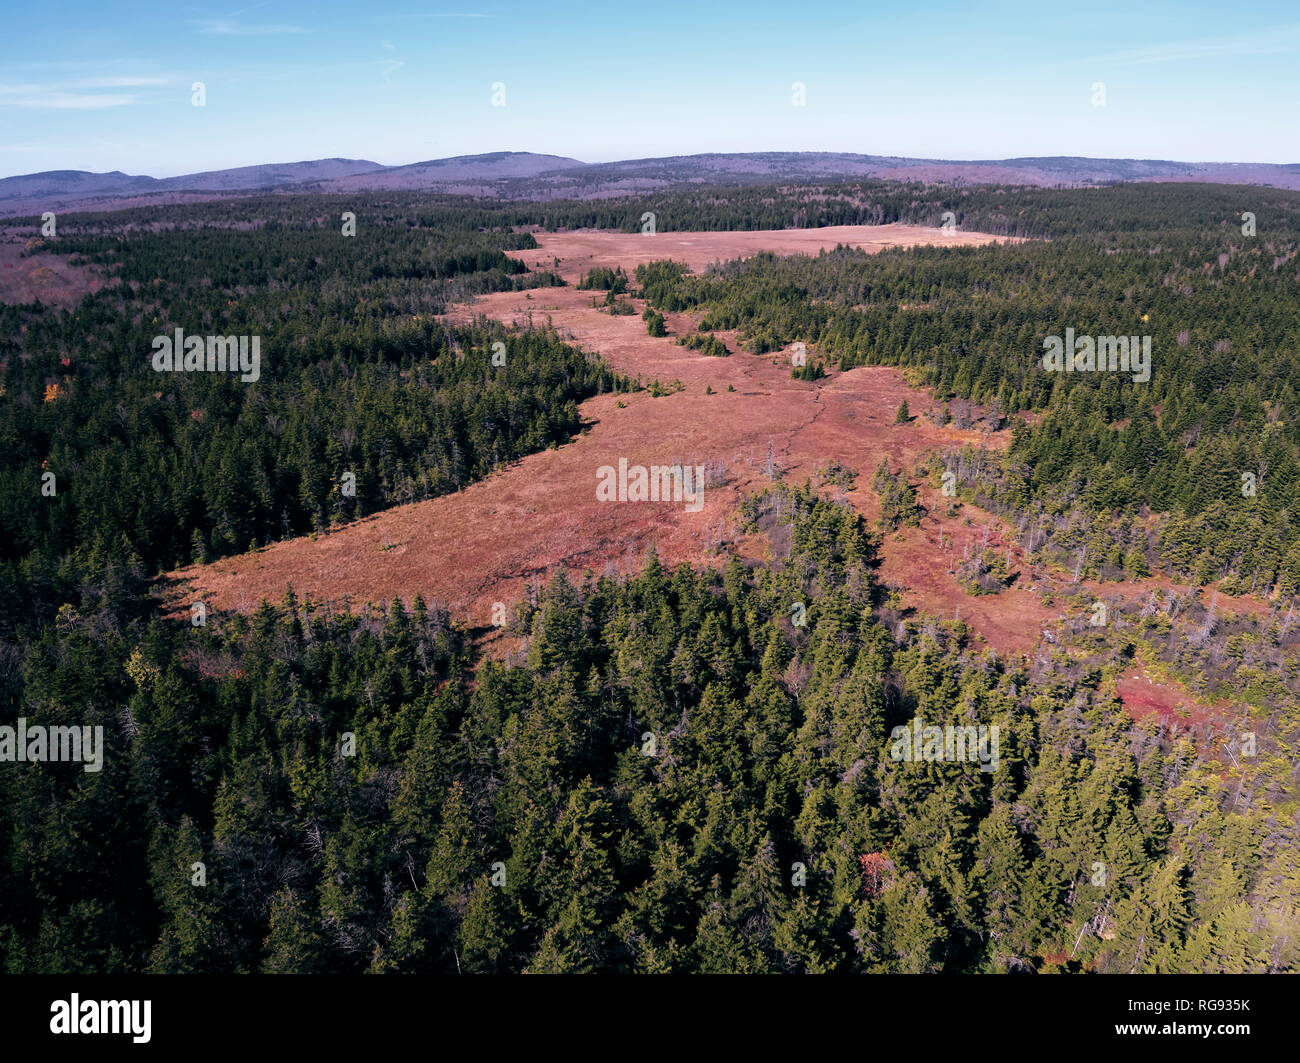 USA, West Virginia, Aerial view of Dolly Sods Wilderness area Stock Photo